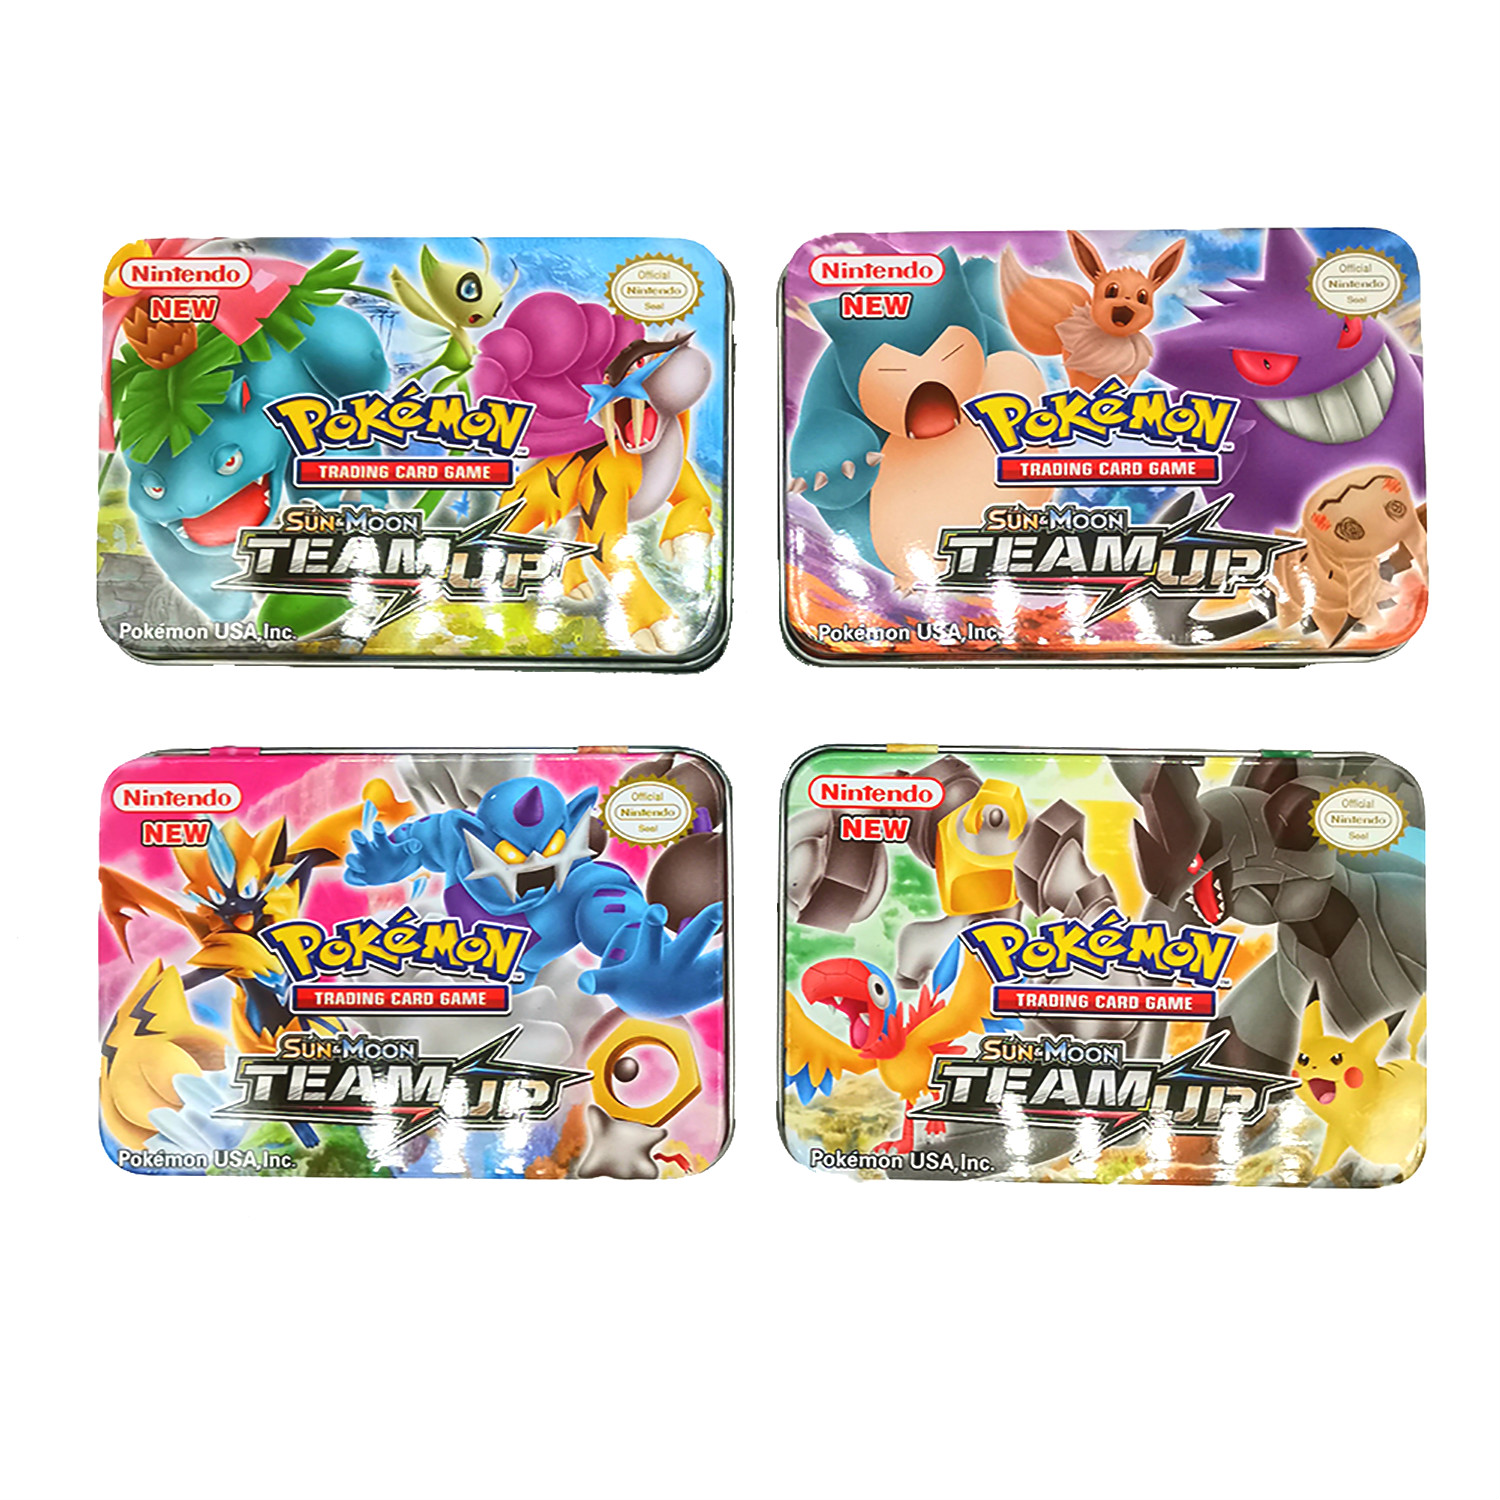 42pcs-set-font-b-pokemon-b-font-iron-box-takara-tomy-battle-toys-hobbies-hobby-collectibles-game-collection-anime-cards-for-children